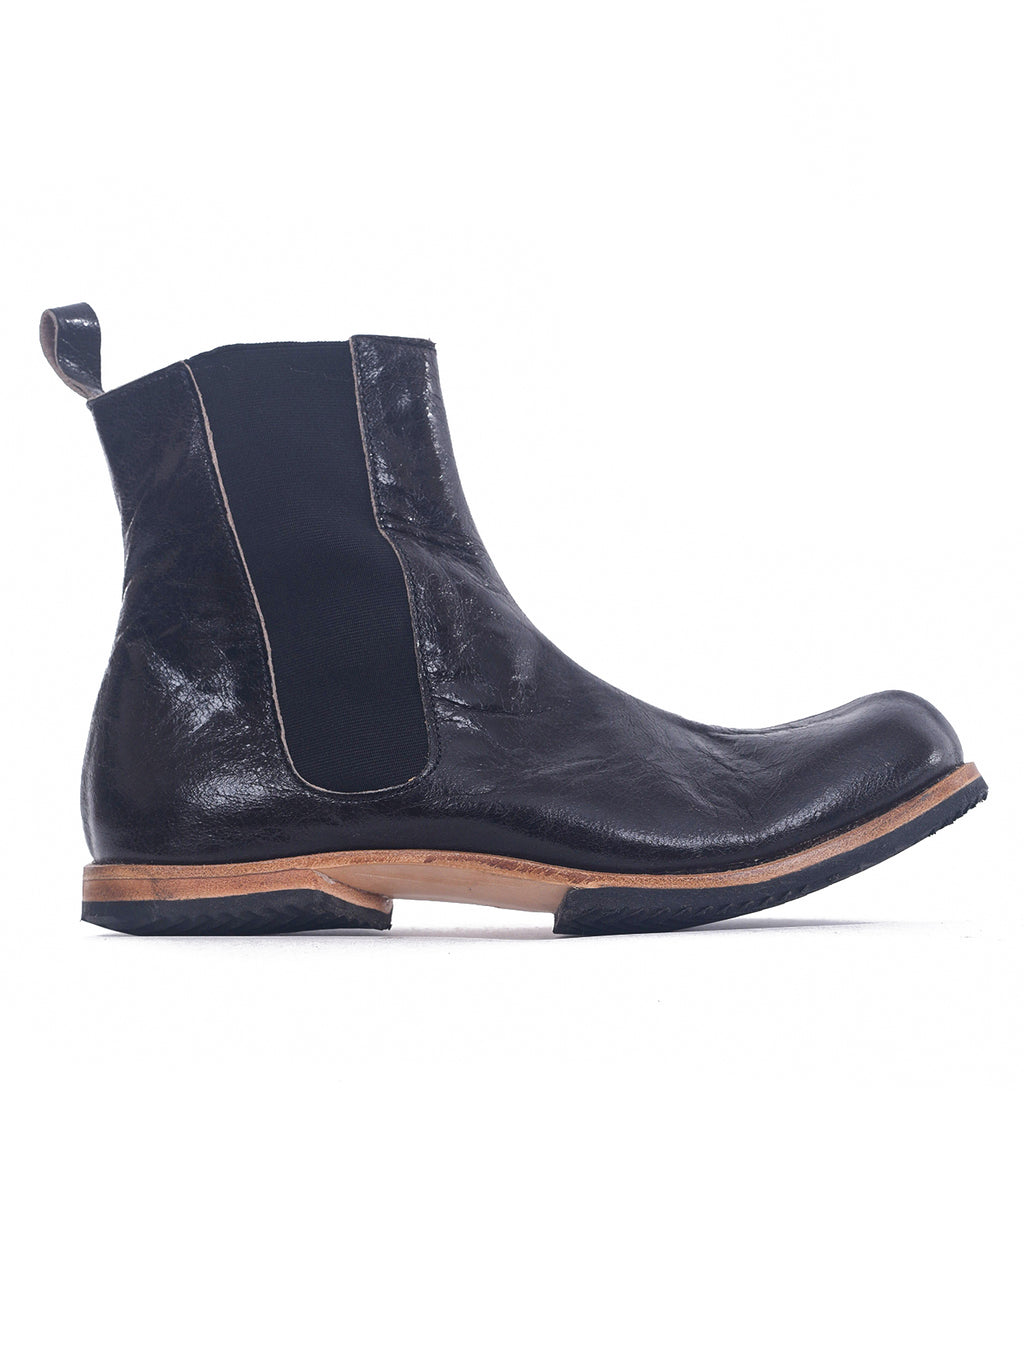 Cydwoq Gasket Boots, Black Distressed